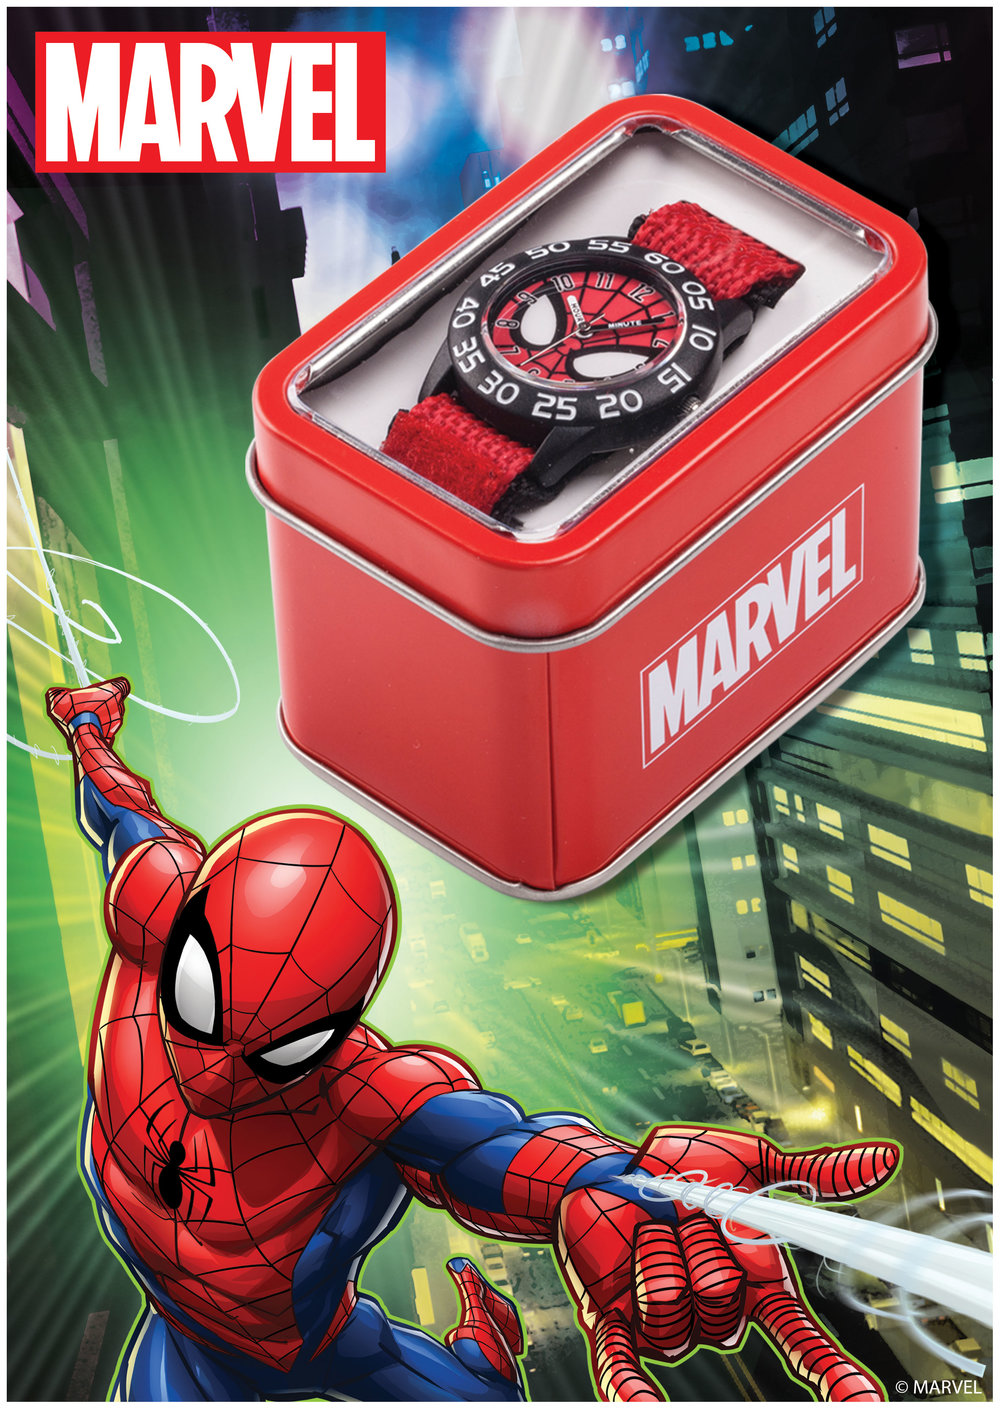 marvel-advert2_scorpio-worldwide_travel-retail-distributor